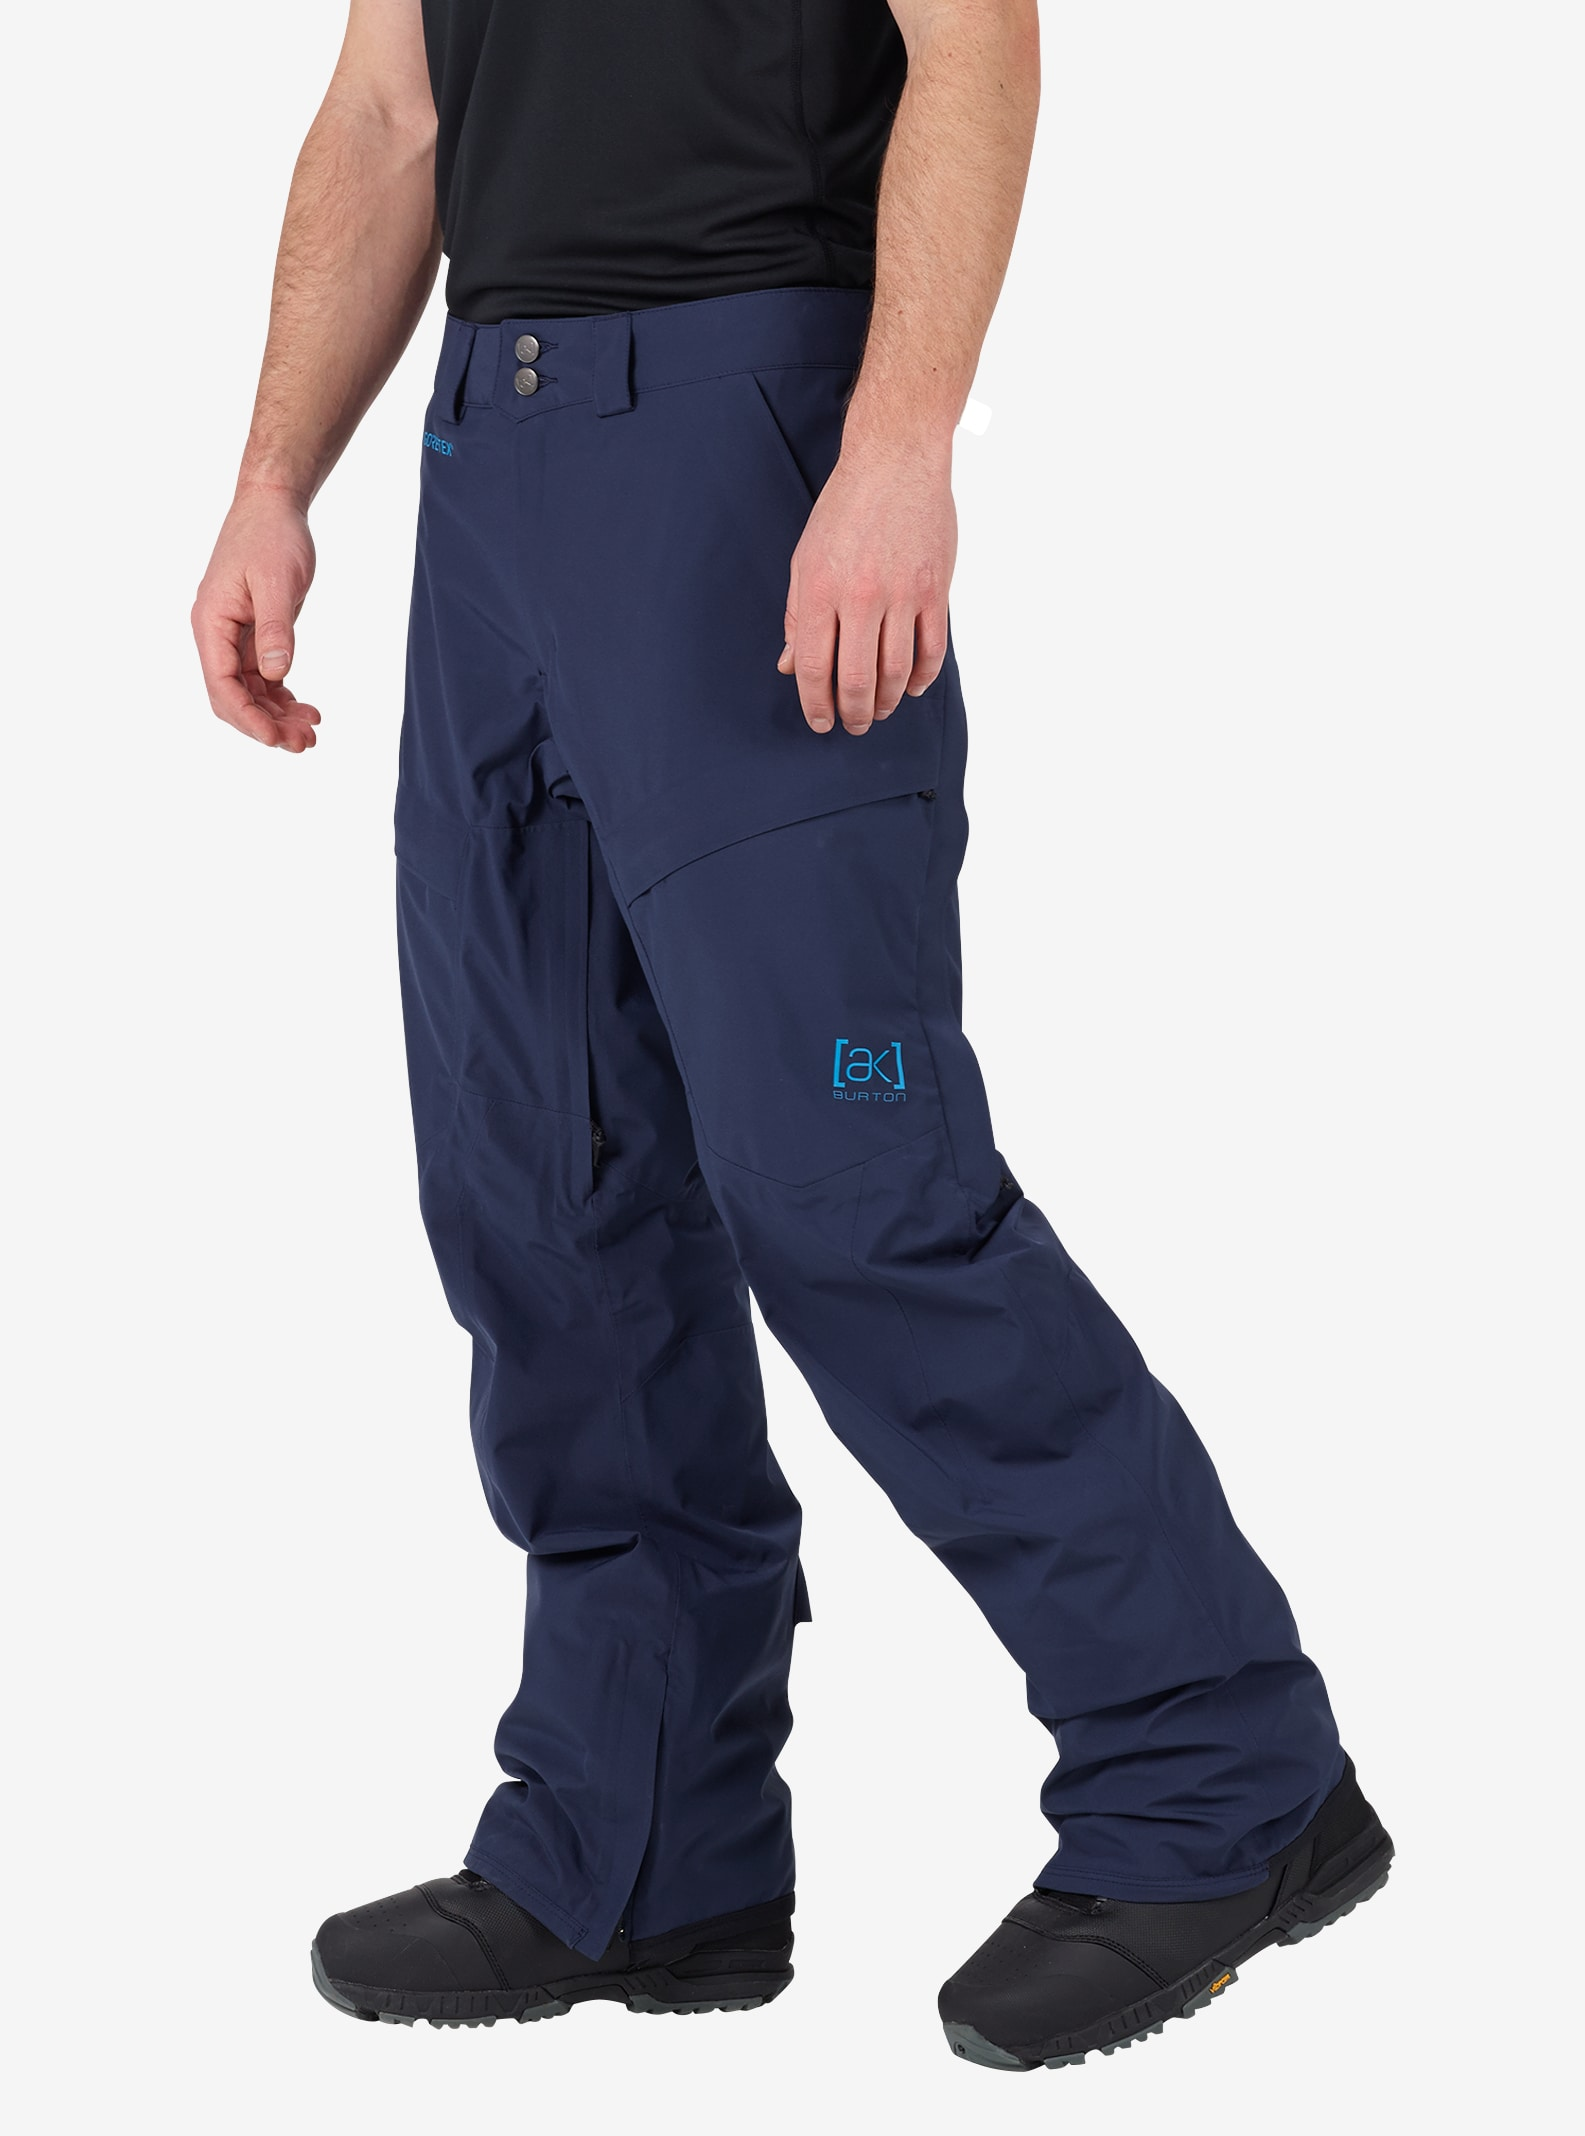 Men's Burton [ak] GORE‑TEX® Swash Pant shown in Mood Indigo